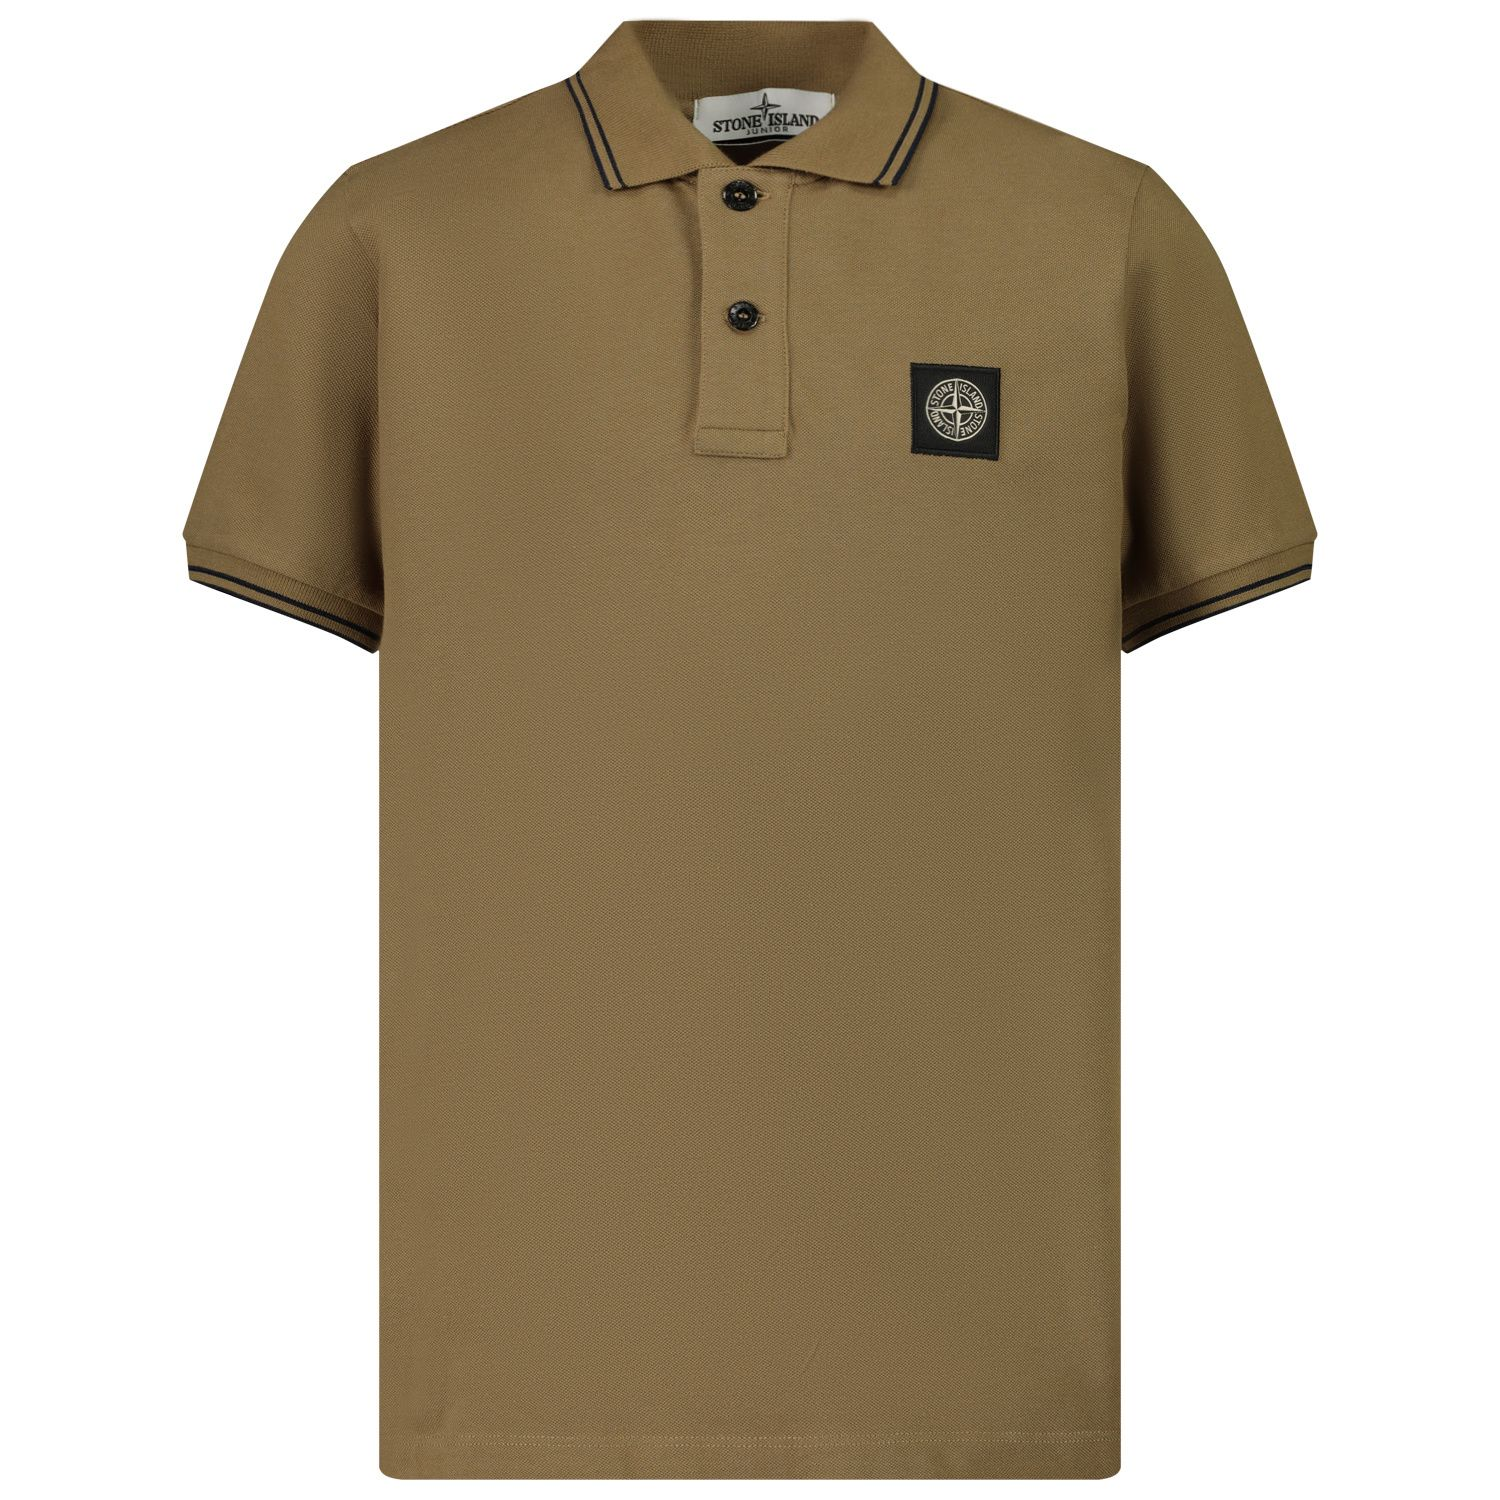 Picture of Stone Island MO731621348 kids polo shirt camel